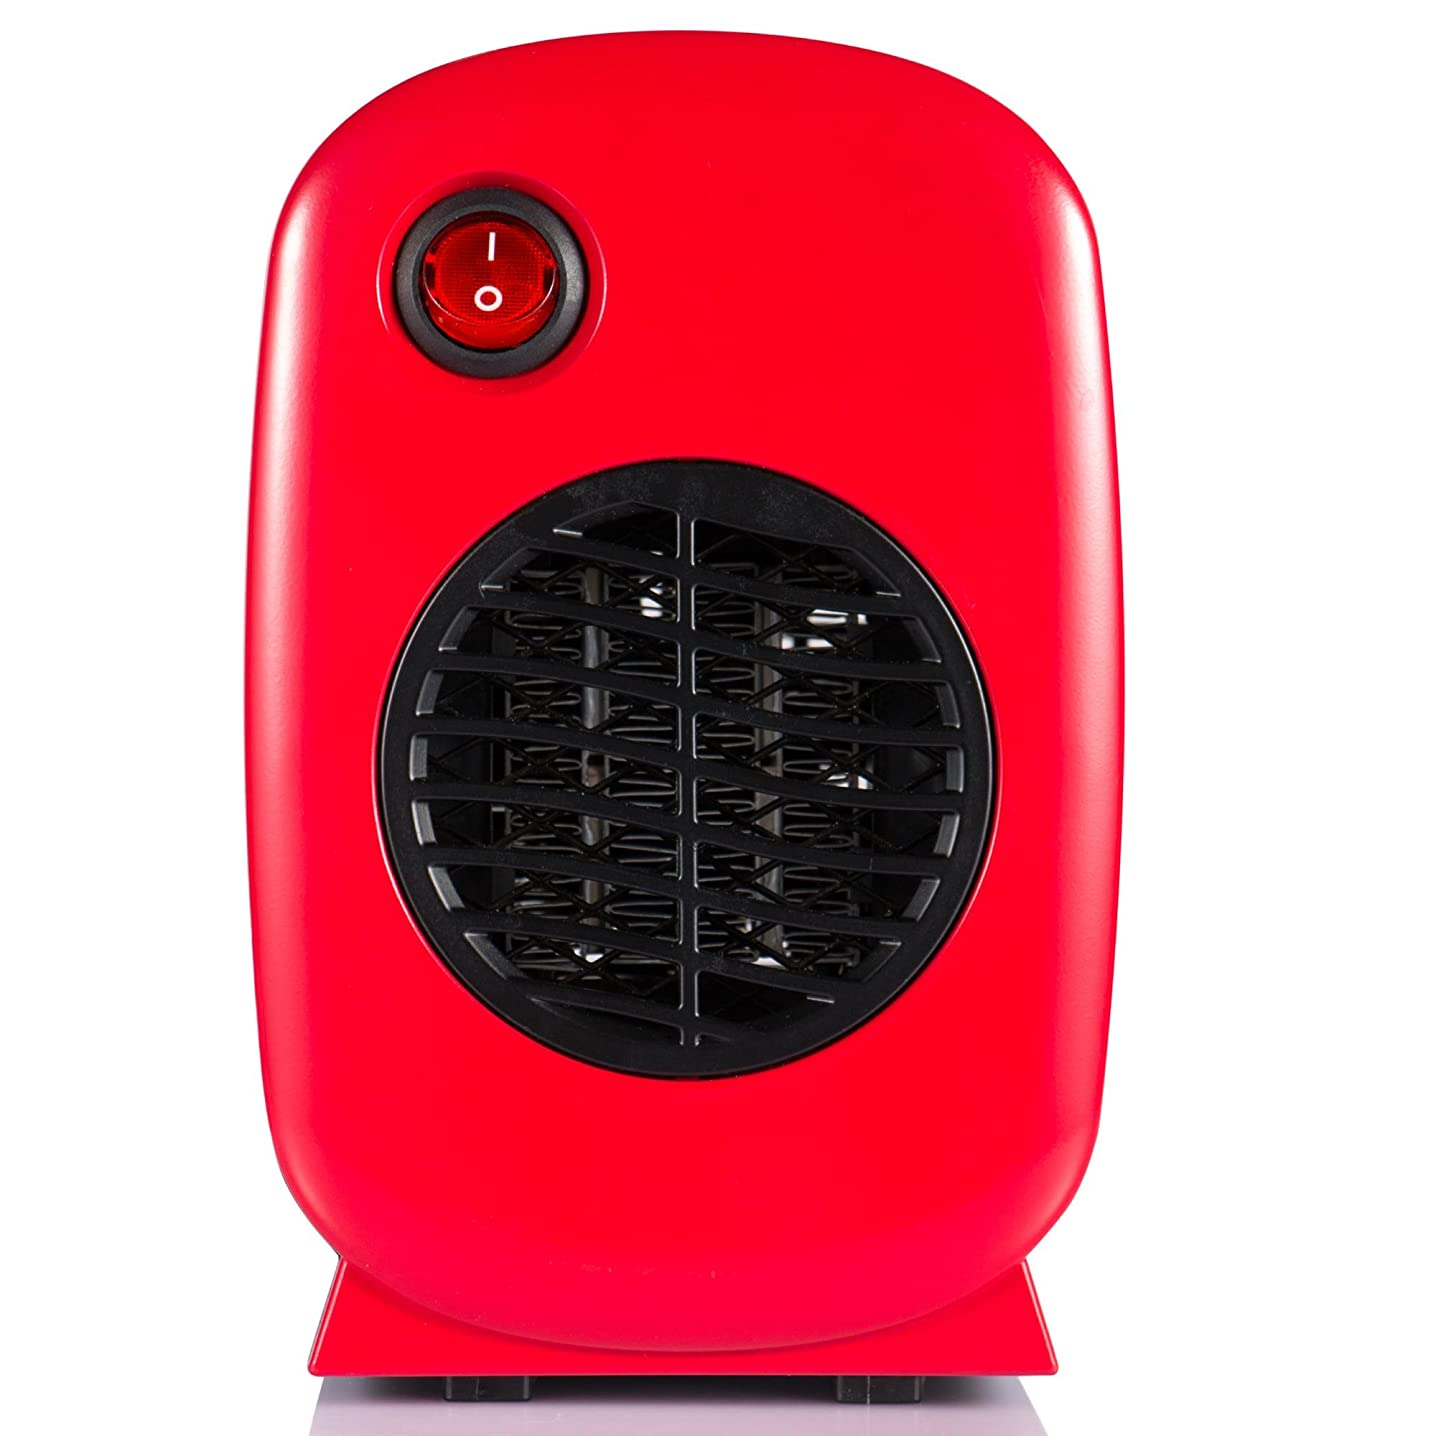 Brightown Personal Ceramic Portable-Mini Heater for Office Desktop Table Home Kitchen Dorm, 250-Watt ETL Listed for Safe Use, Red